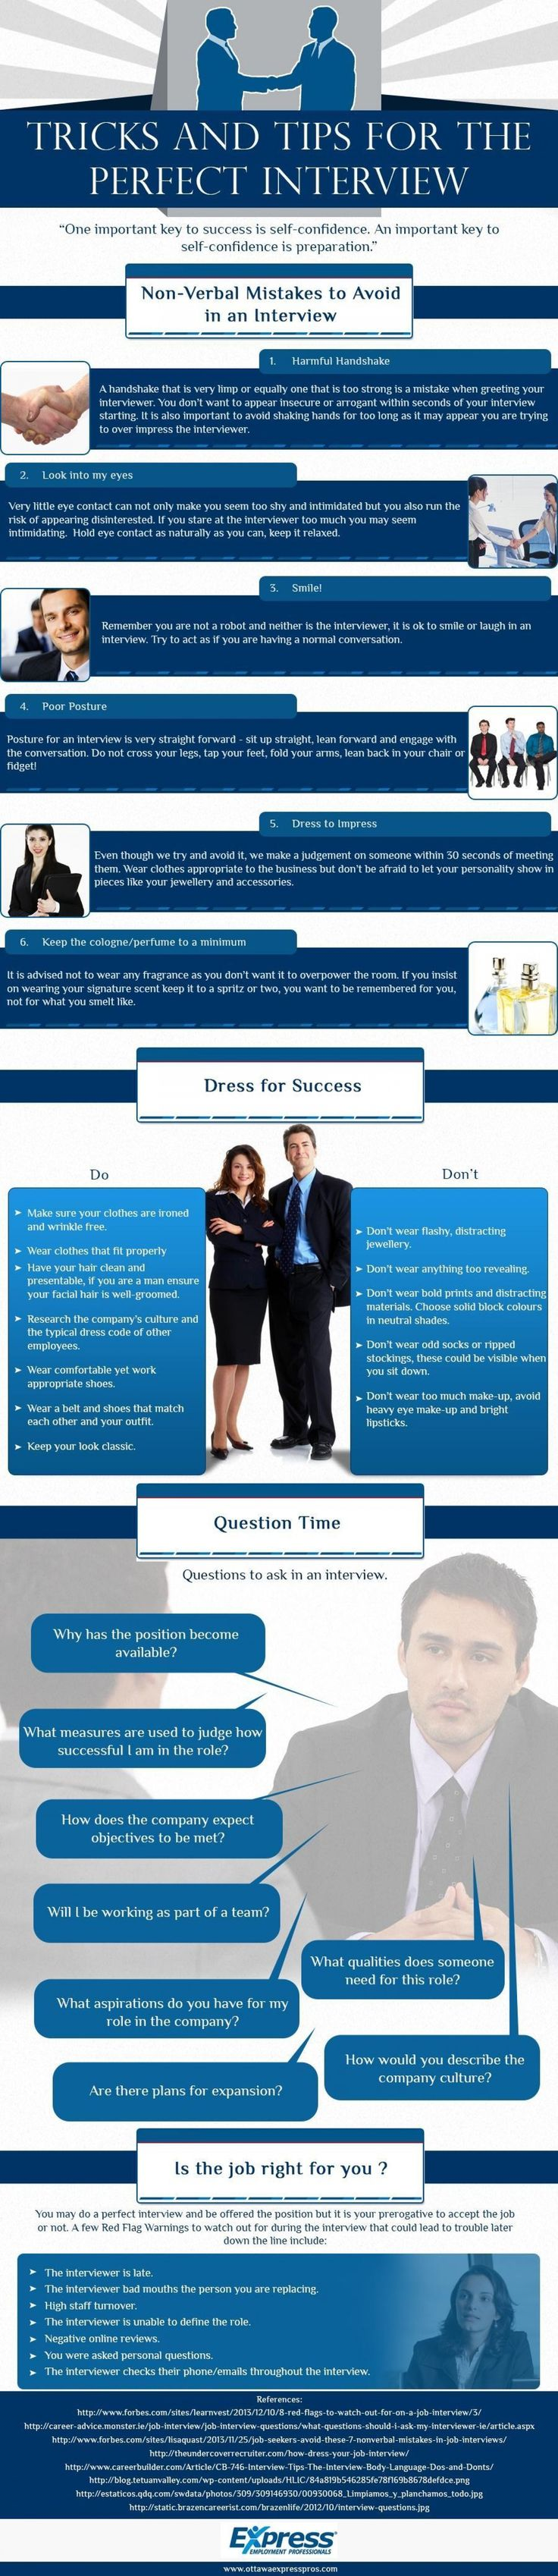 5 resume tips to land more job interviews questions cover letter 5 resume tips to land more job interviews questions resume tips perfecting nursing resume cover letter